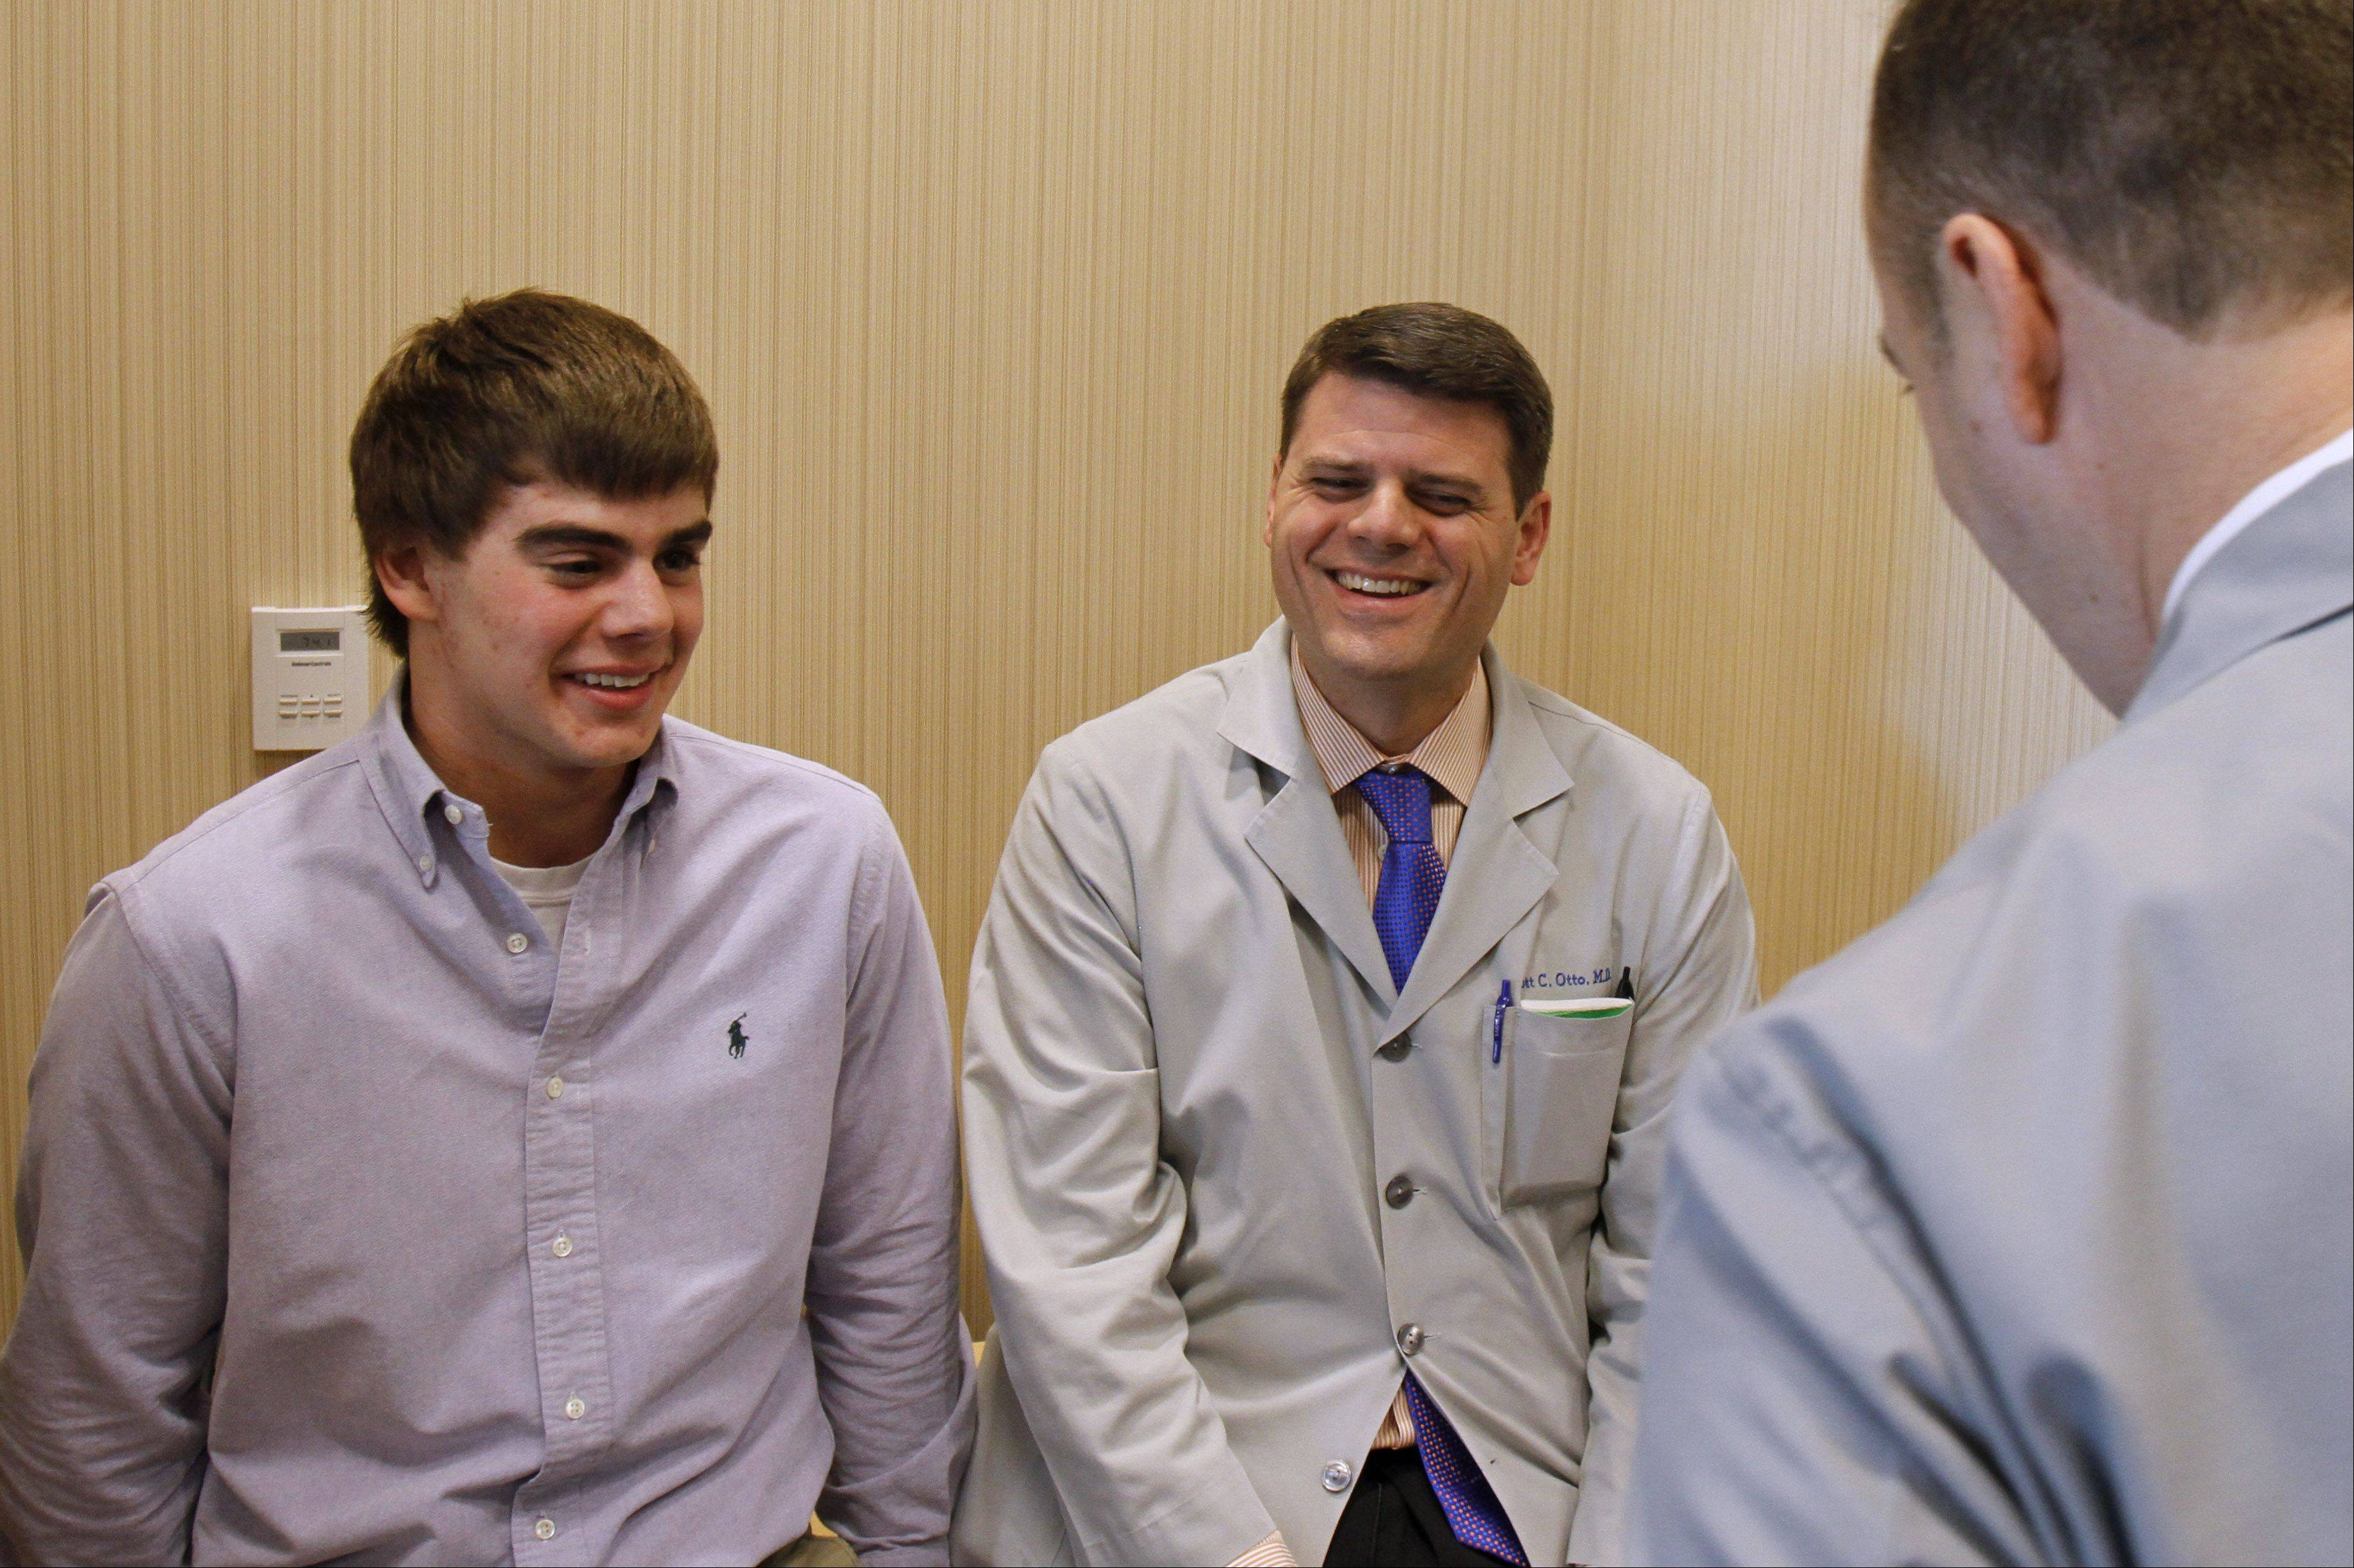 18-year-old Forrest Ericksen of Lake Villa laughs with surgeon's Dr. Scott Otto, middle, and Dr. William Watson, right, at Advocate Condell Medical Center in Libertyville. The surgeons at Libertyville's Advocate Condell Medical Center level 1 trauma unit saved Ericksen's life after a snowmobile accident almost two years ago.